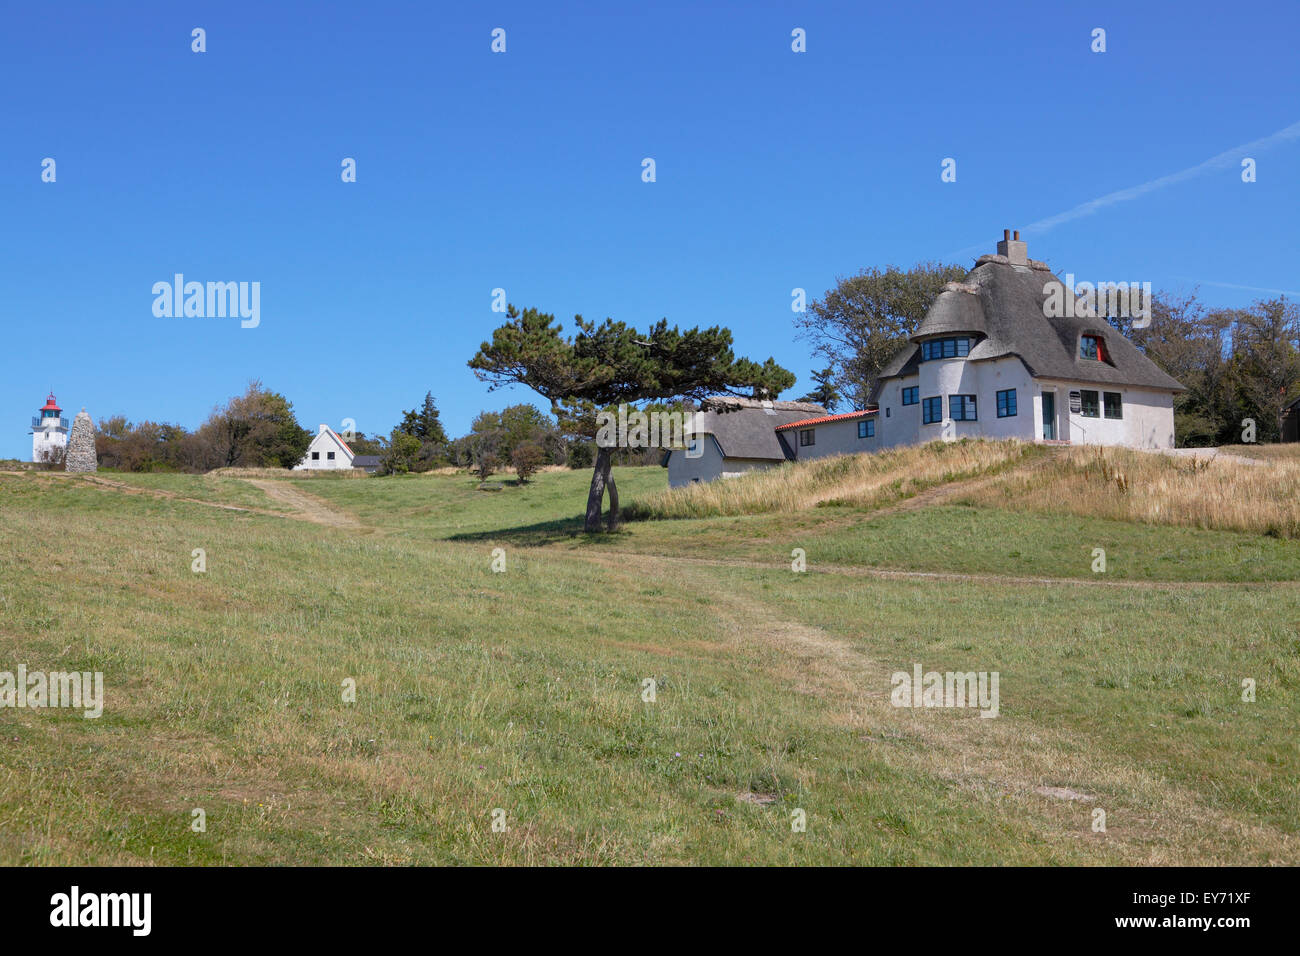 The home of the famous Danish polar explorer and anthropologist, Knud Rasmussen, on the moraine cliff Spodsbjerg - Stock Image